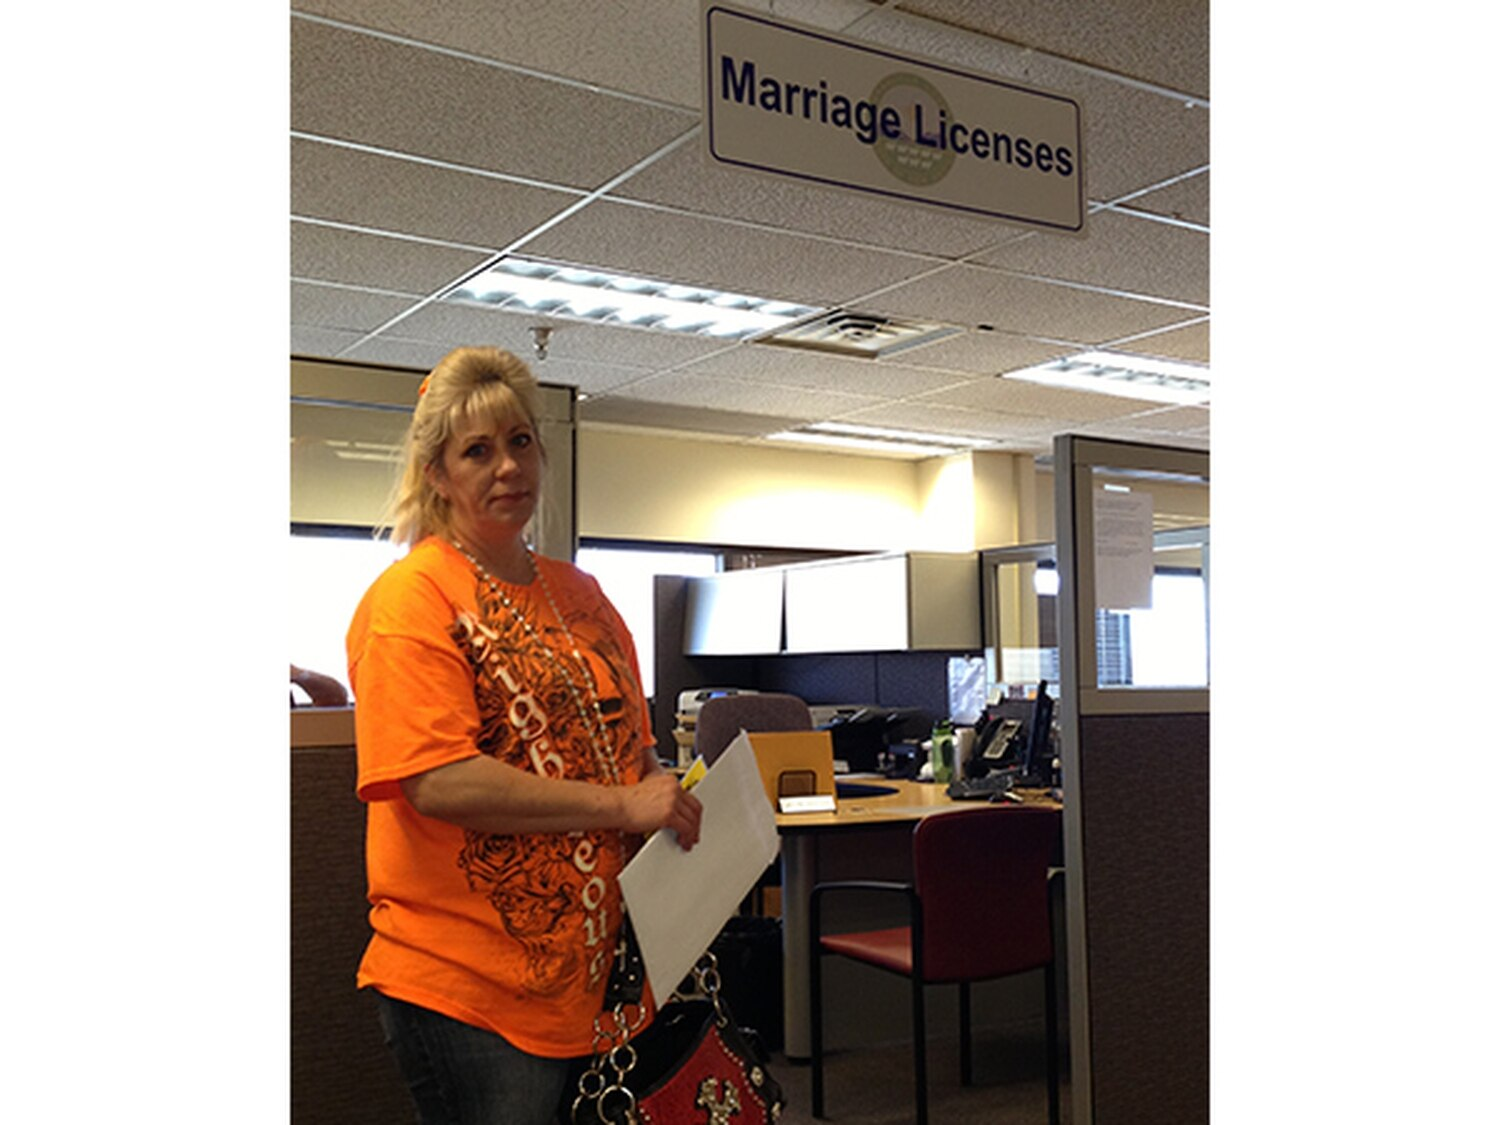 """Under a new law, Jeanne Marsh can't marry her incarcerated fiancé until his expected release in September 2015 because he can't appear at the clerk's office in person. """"It's not like he can ask the warden for an hour off,"""" she says."""